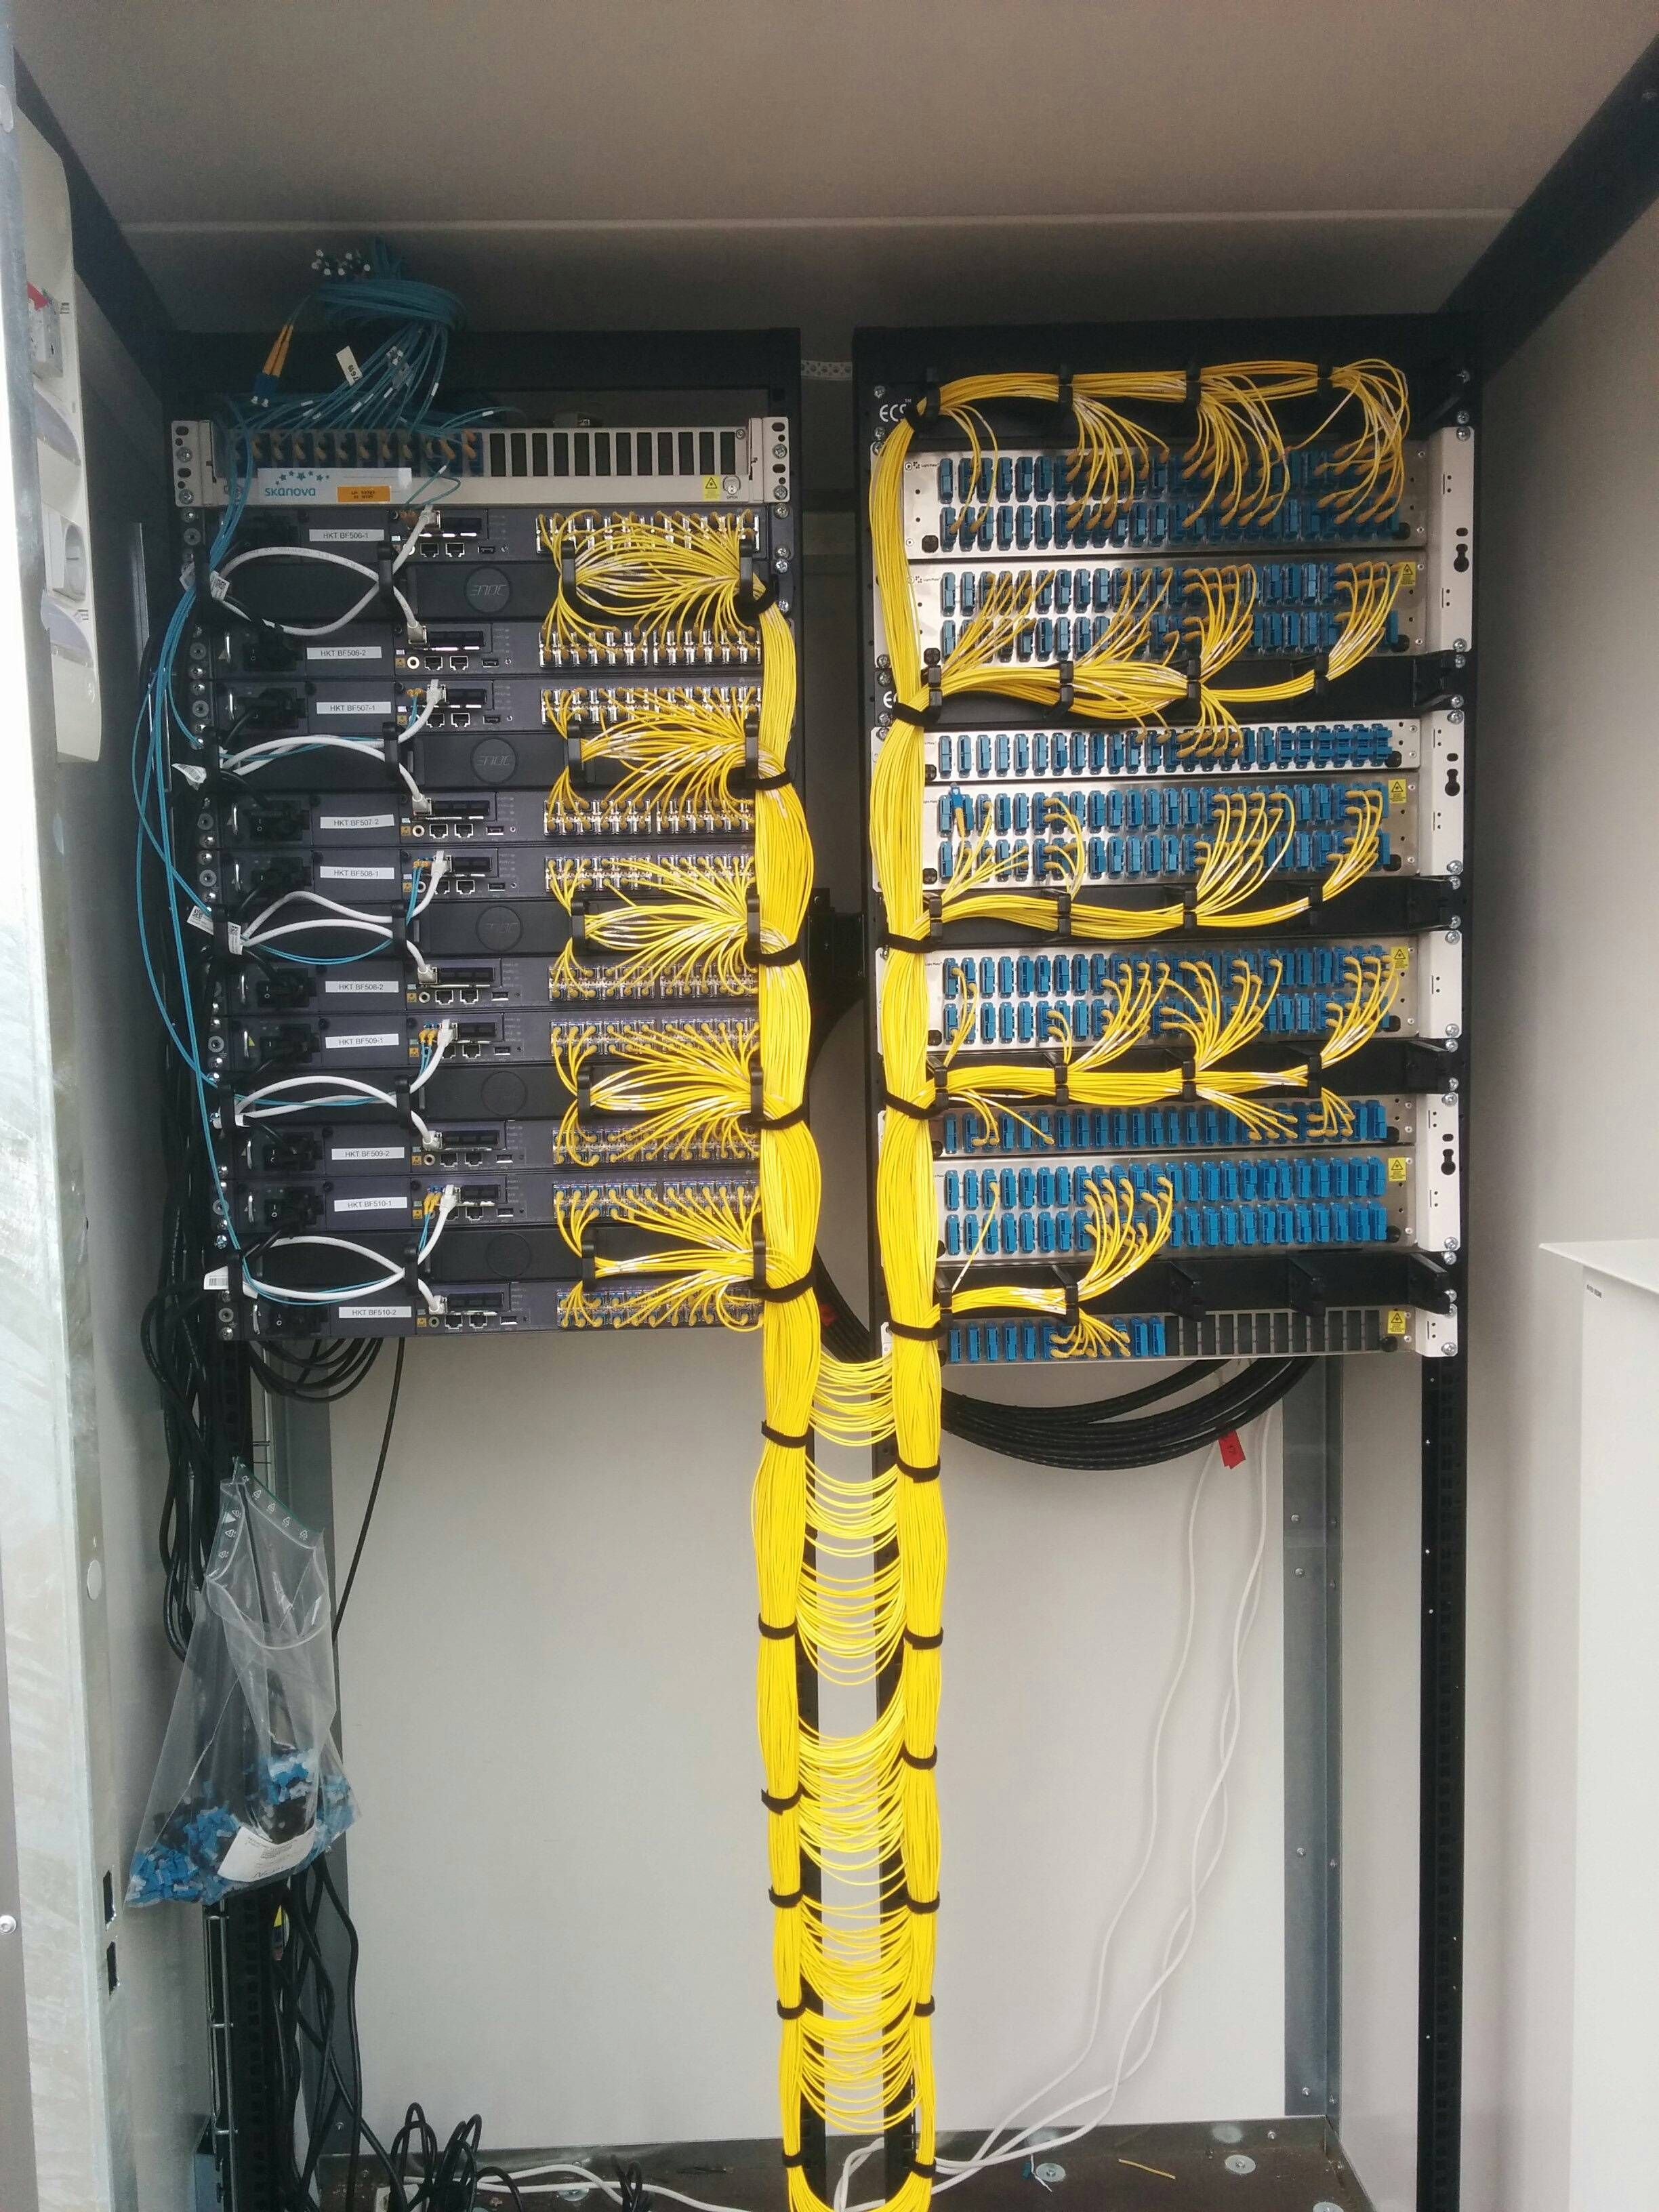 small resolution of about structured wiring on pinterest home wiring fiber and cable wiring cable management on pinterest cable management cable and